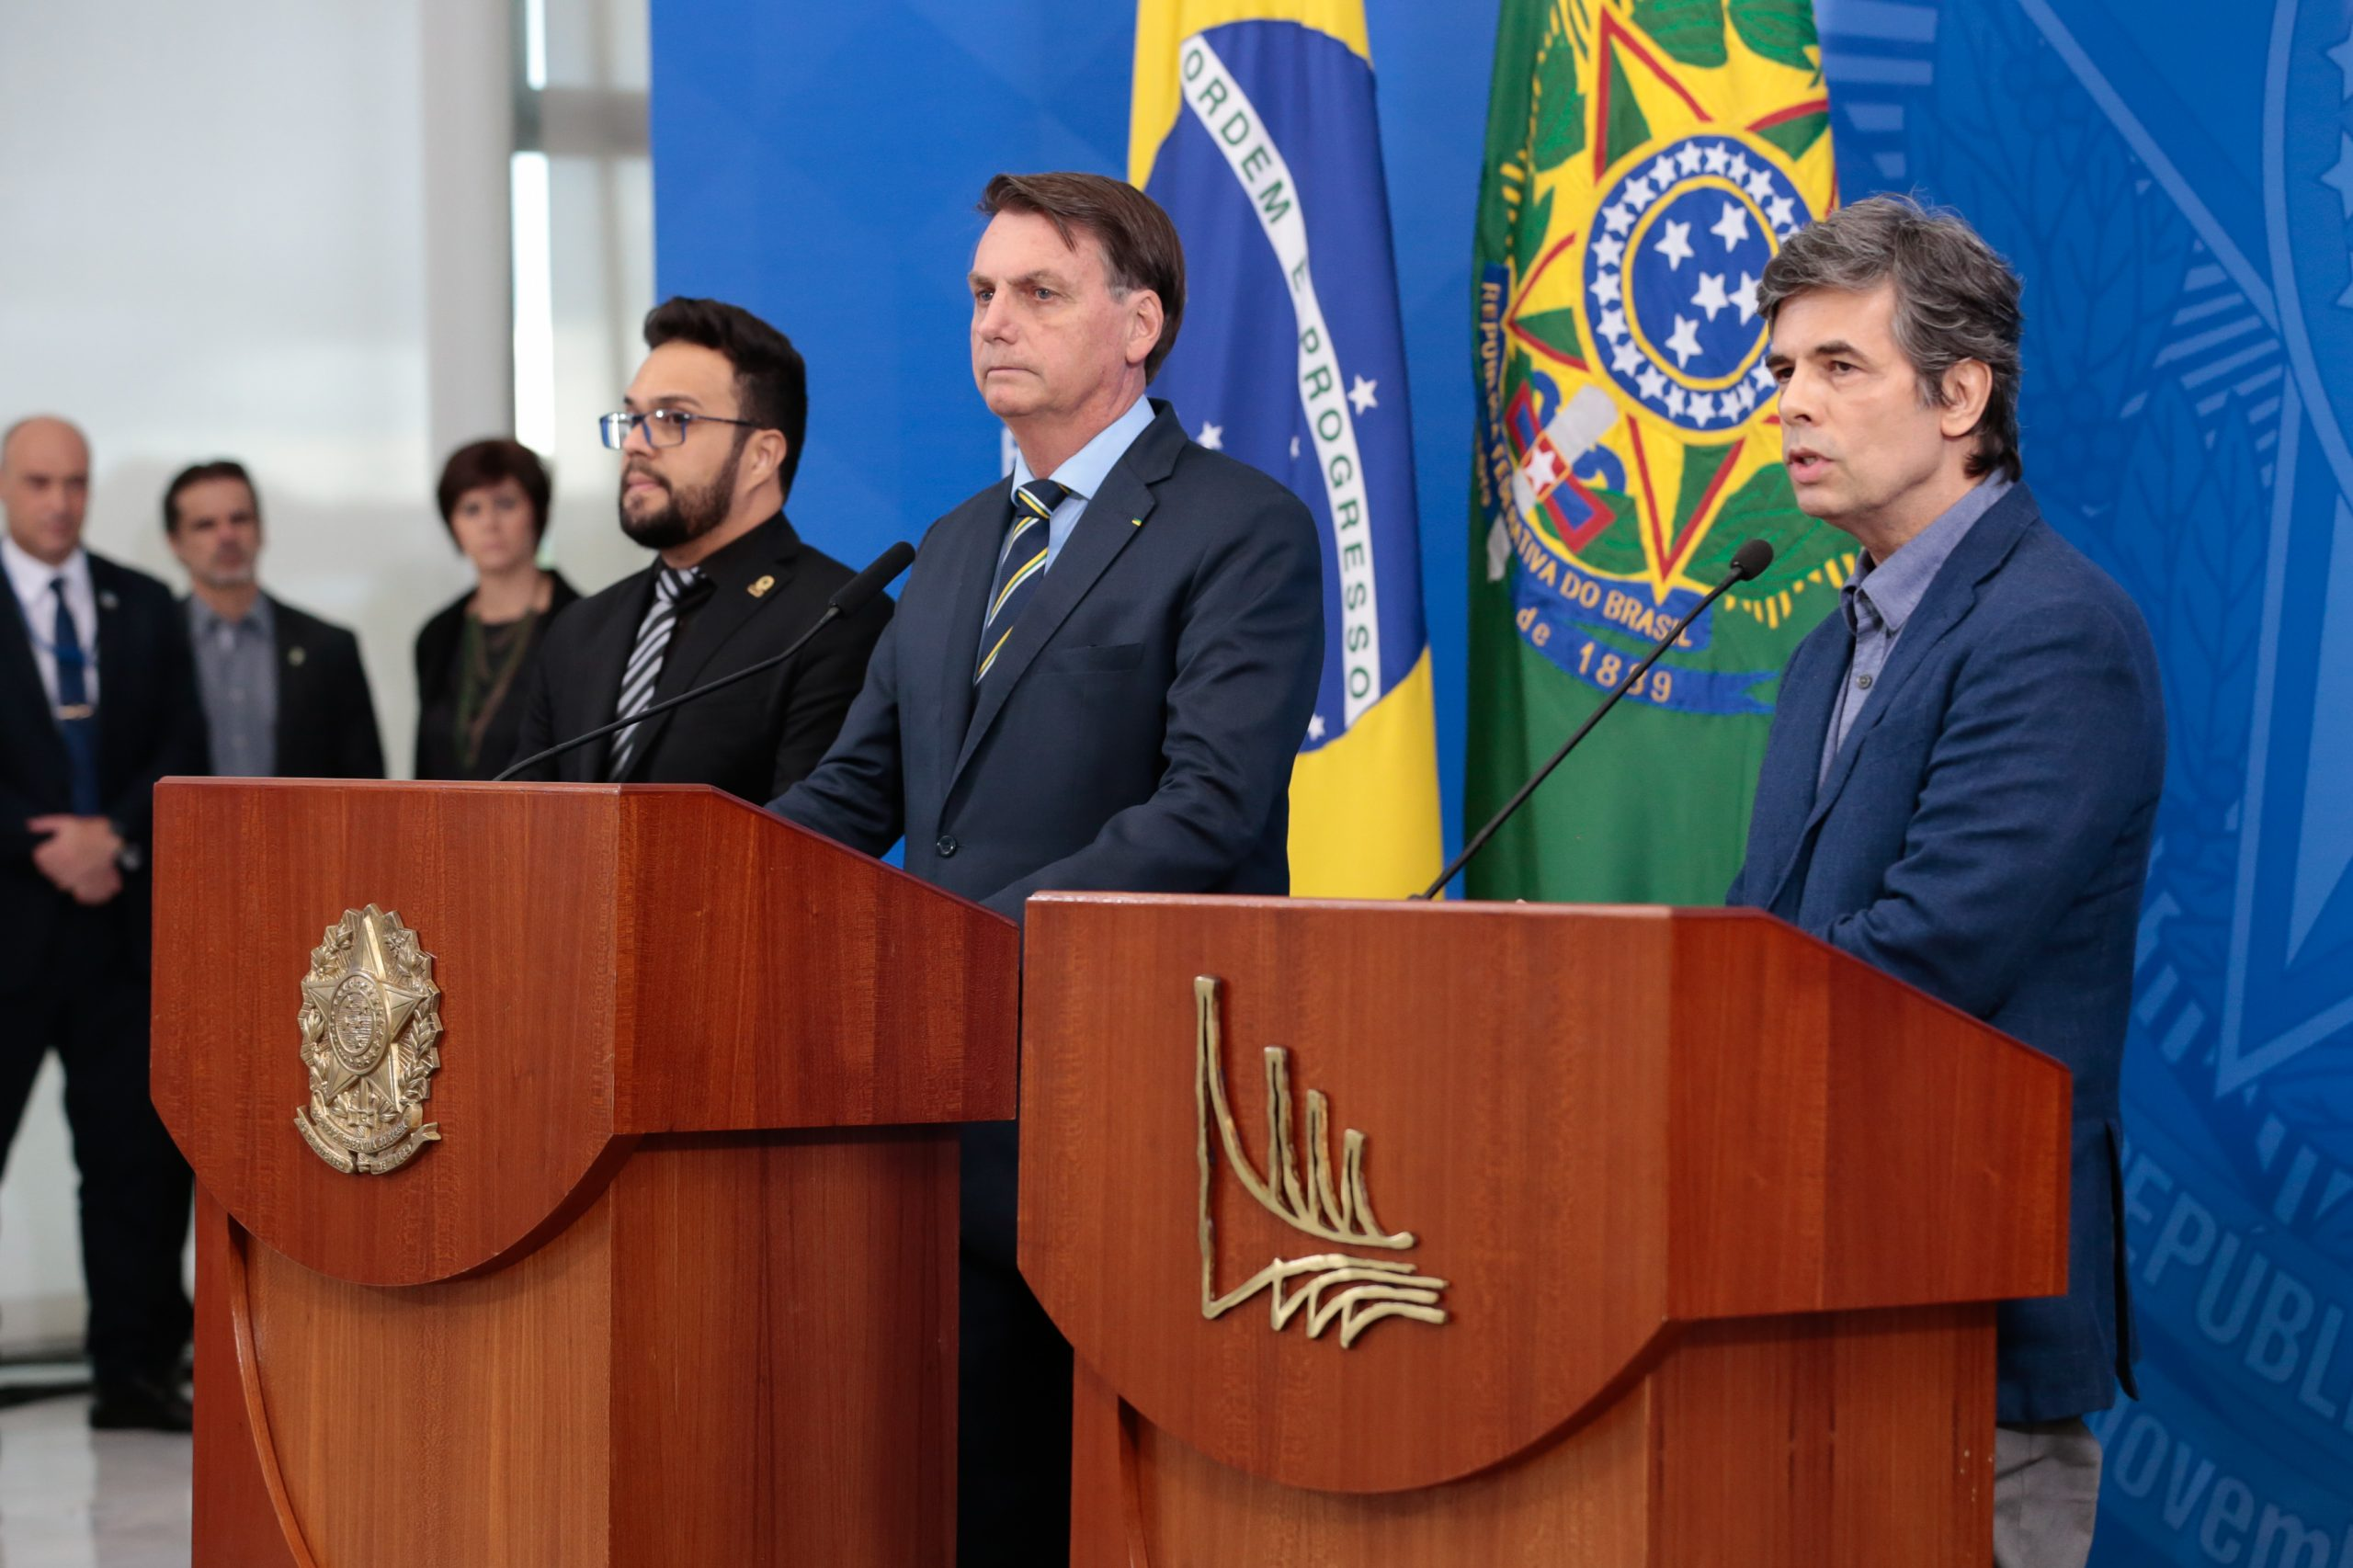 No health minister in Brazil as coronavirus infection spreads